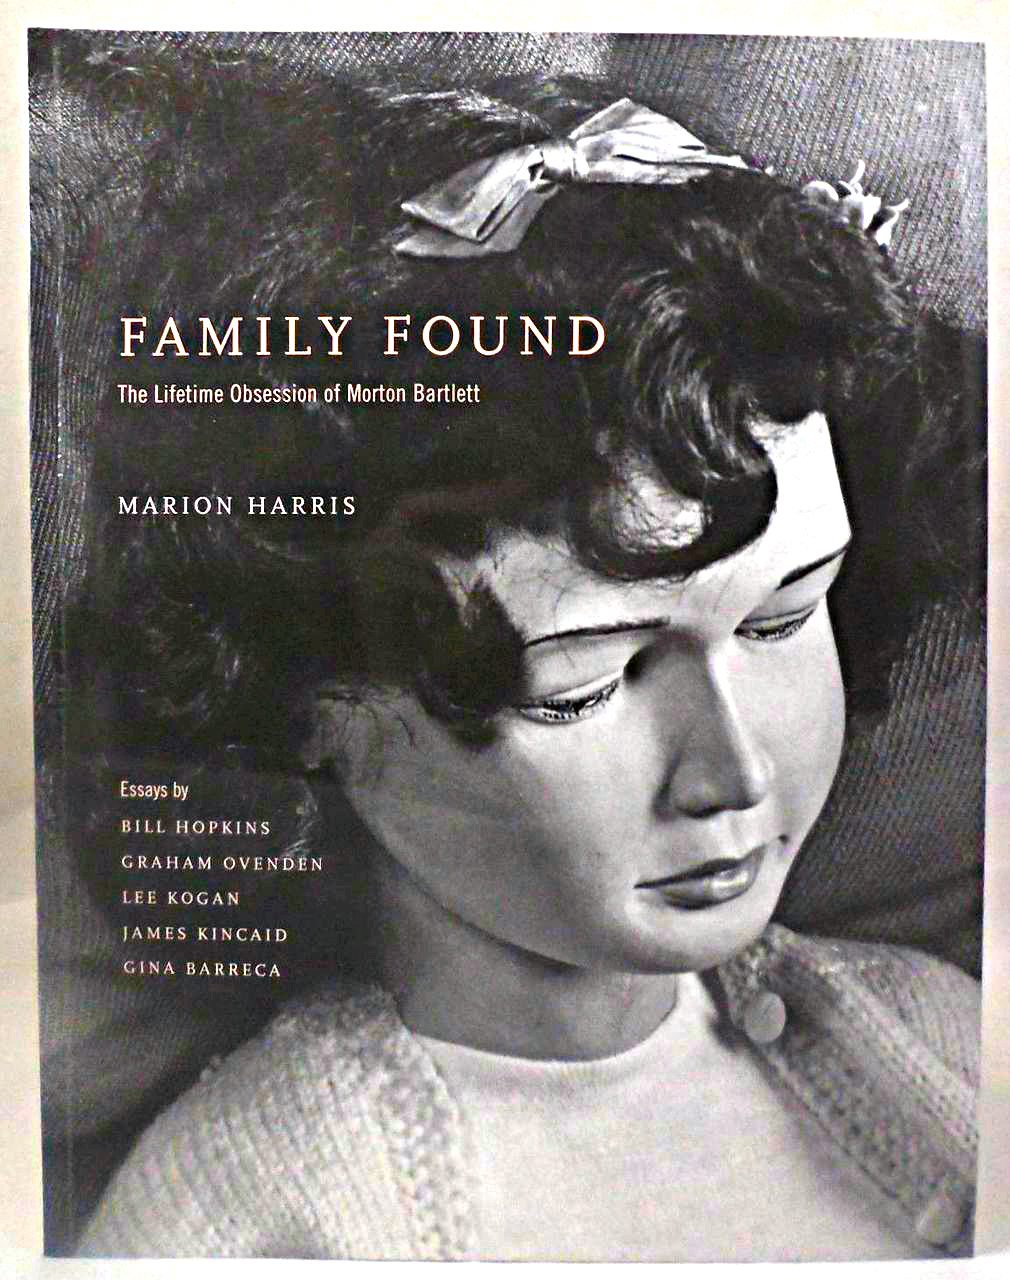 FAMILY FOUND: THE LIFETIME OBSESSION OF MORTON BARTLETT, by Marion Harris, et al - 2002